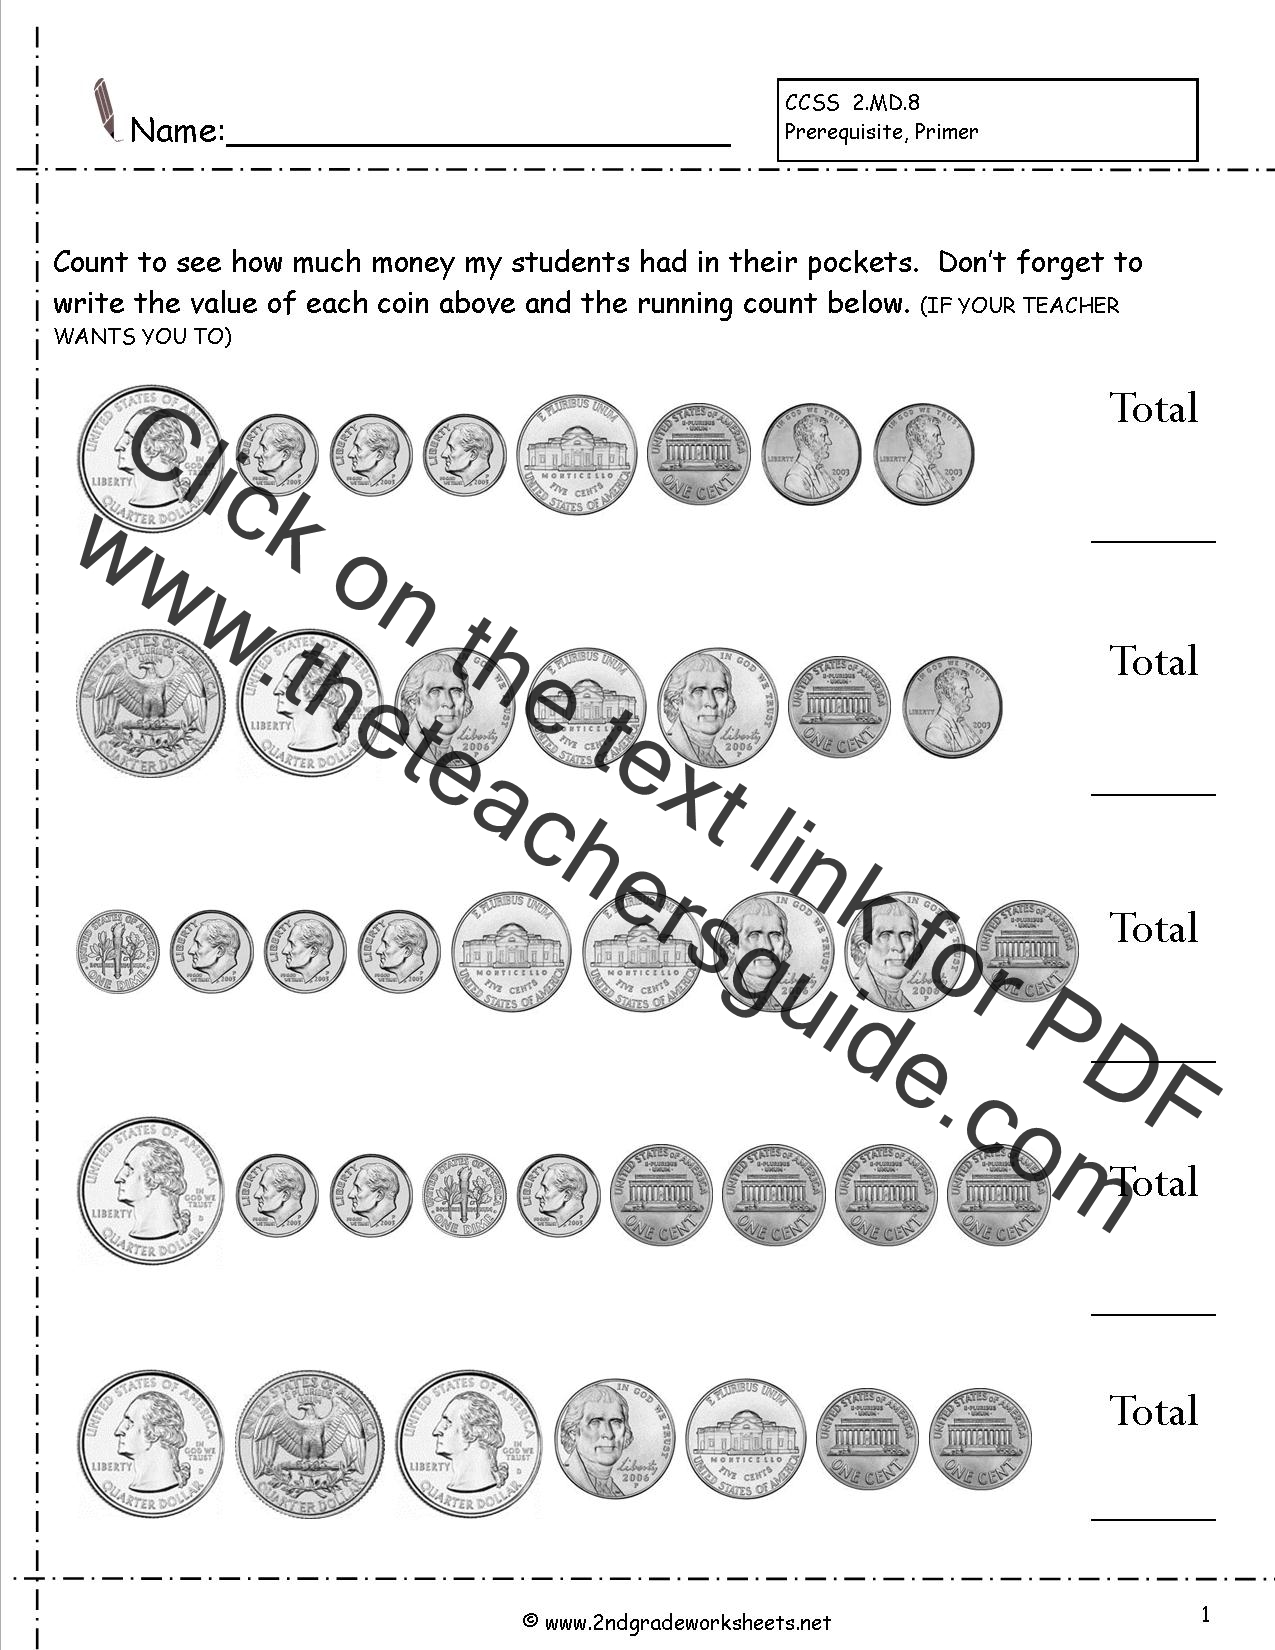 Counting Coins and Money Worksheets and Printouts – Worksheets for 2nd Grade